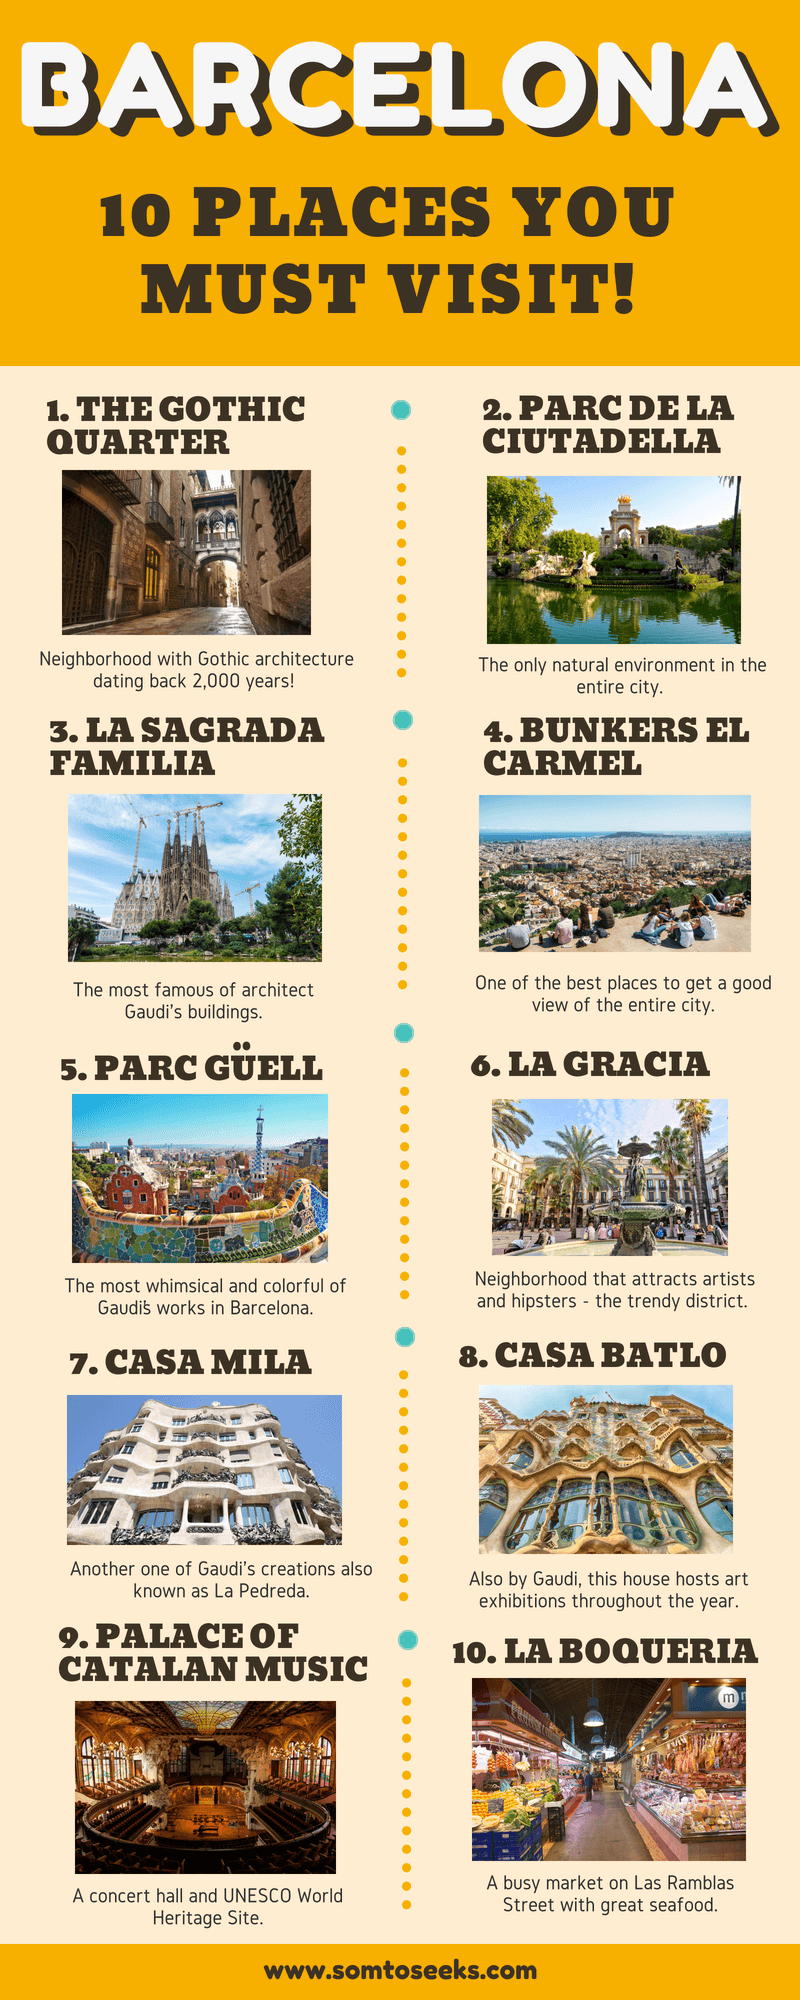 Barcelona Spain Travel - Walking Tour of Barcelona with 10 Places You Must Visit